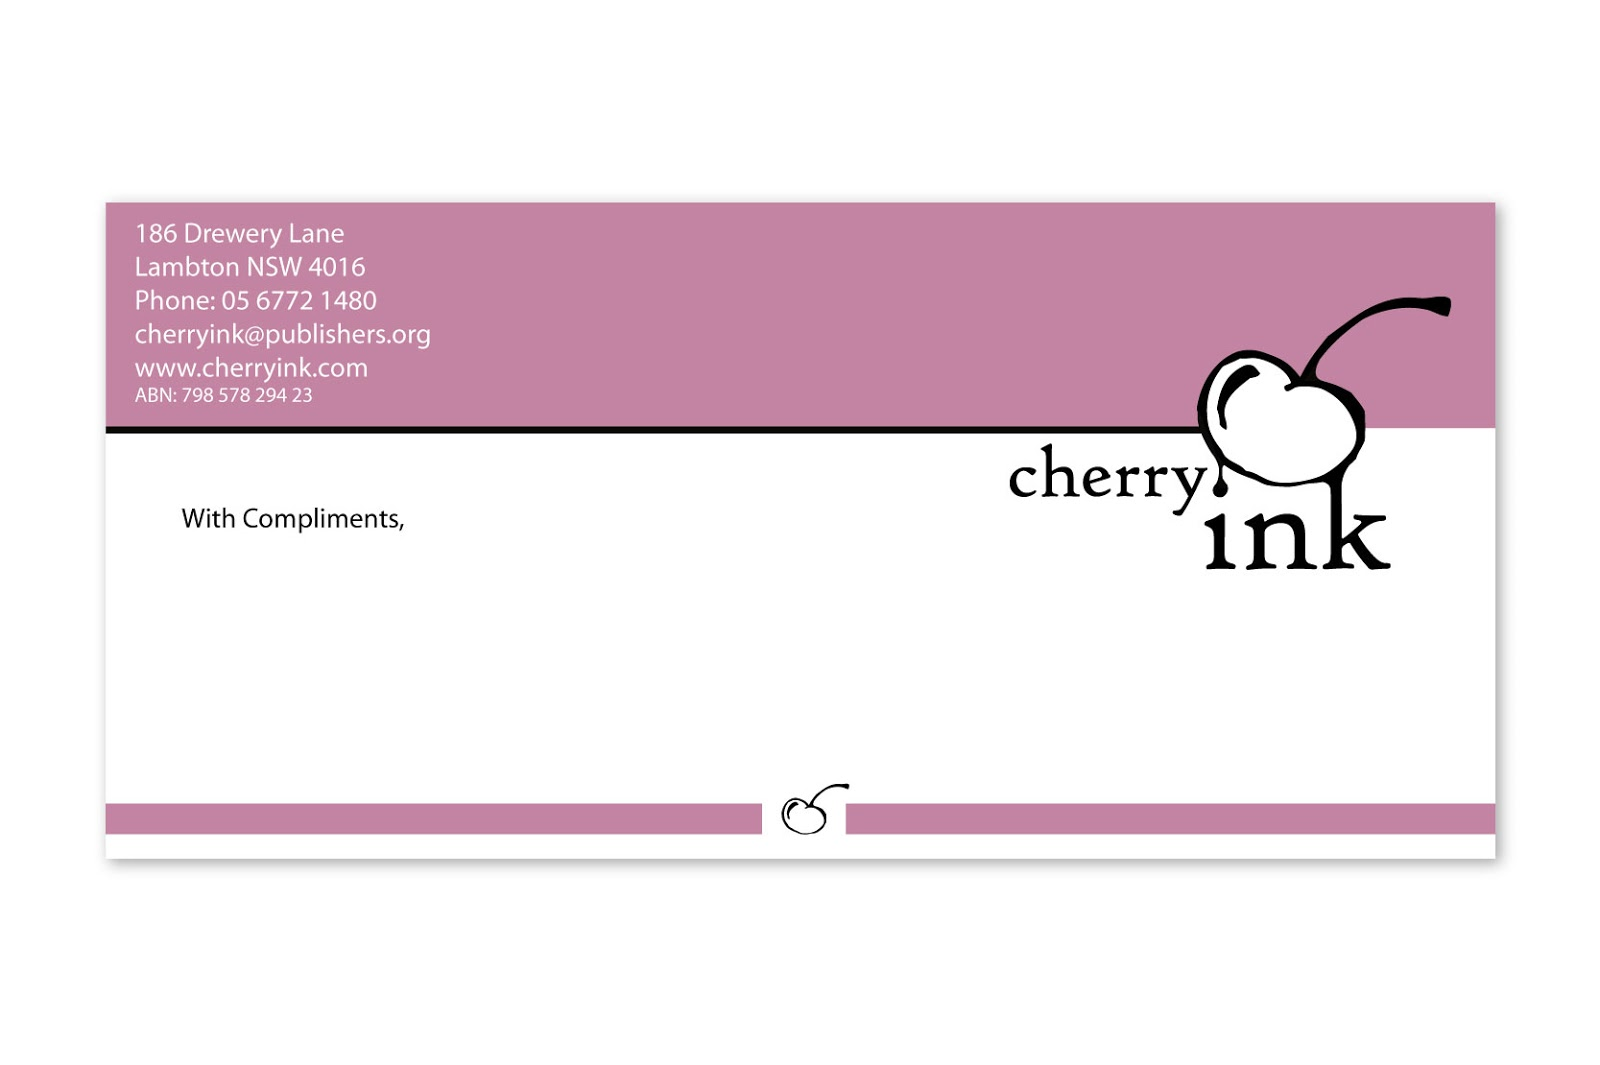 Avery 5161 label template